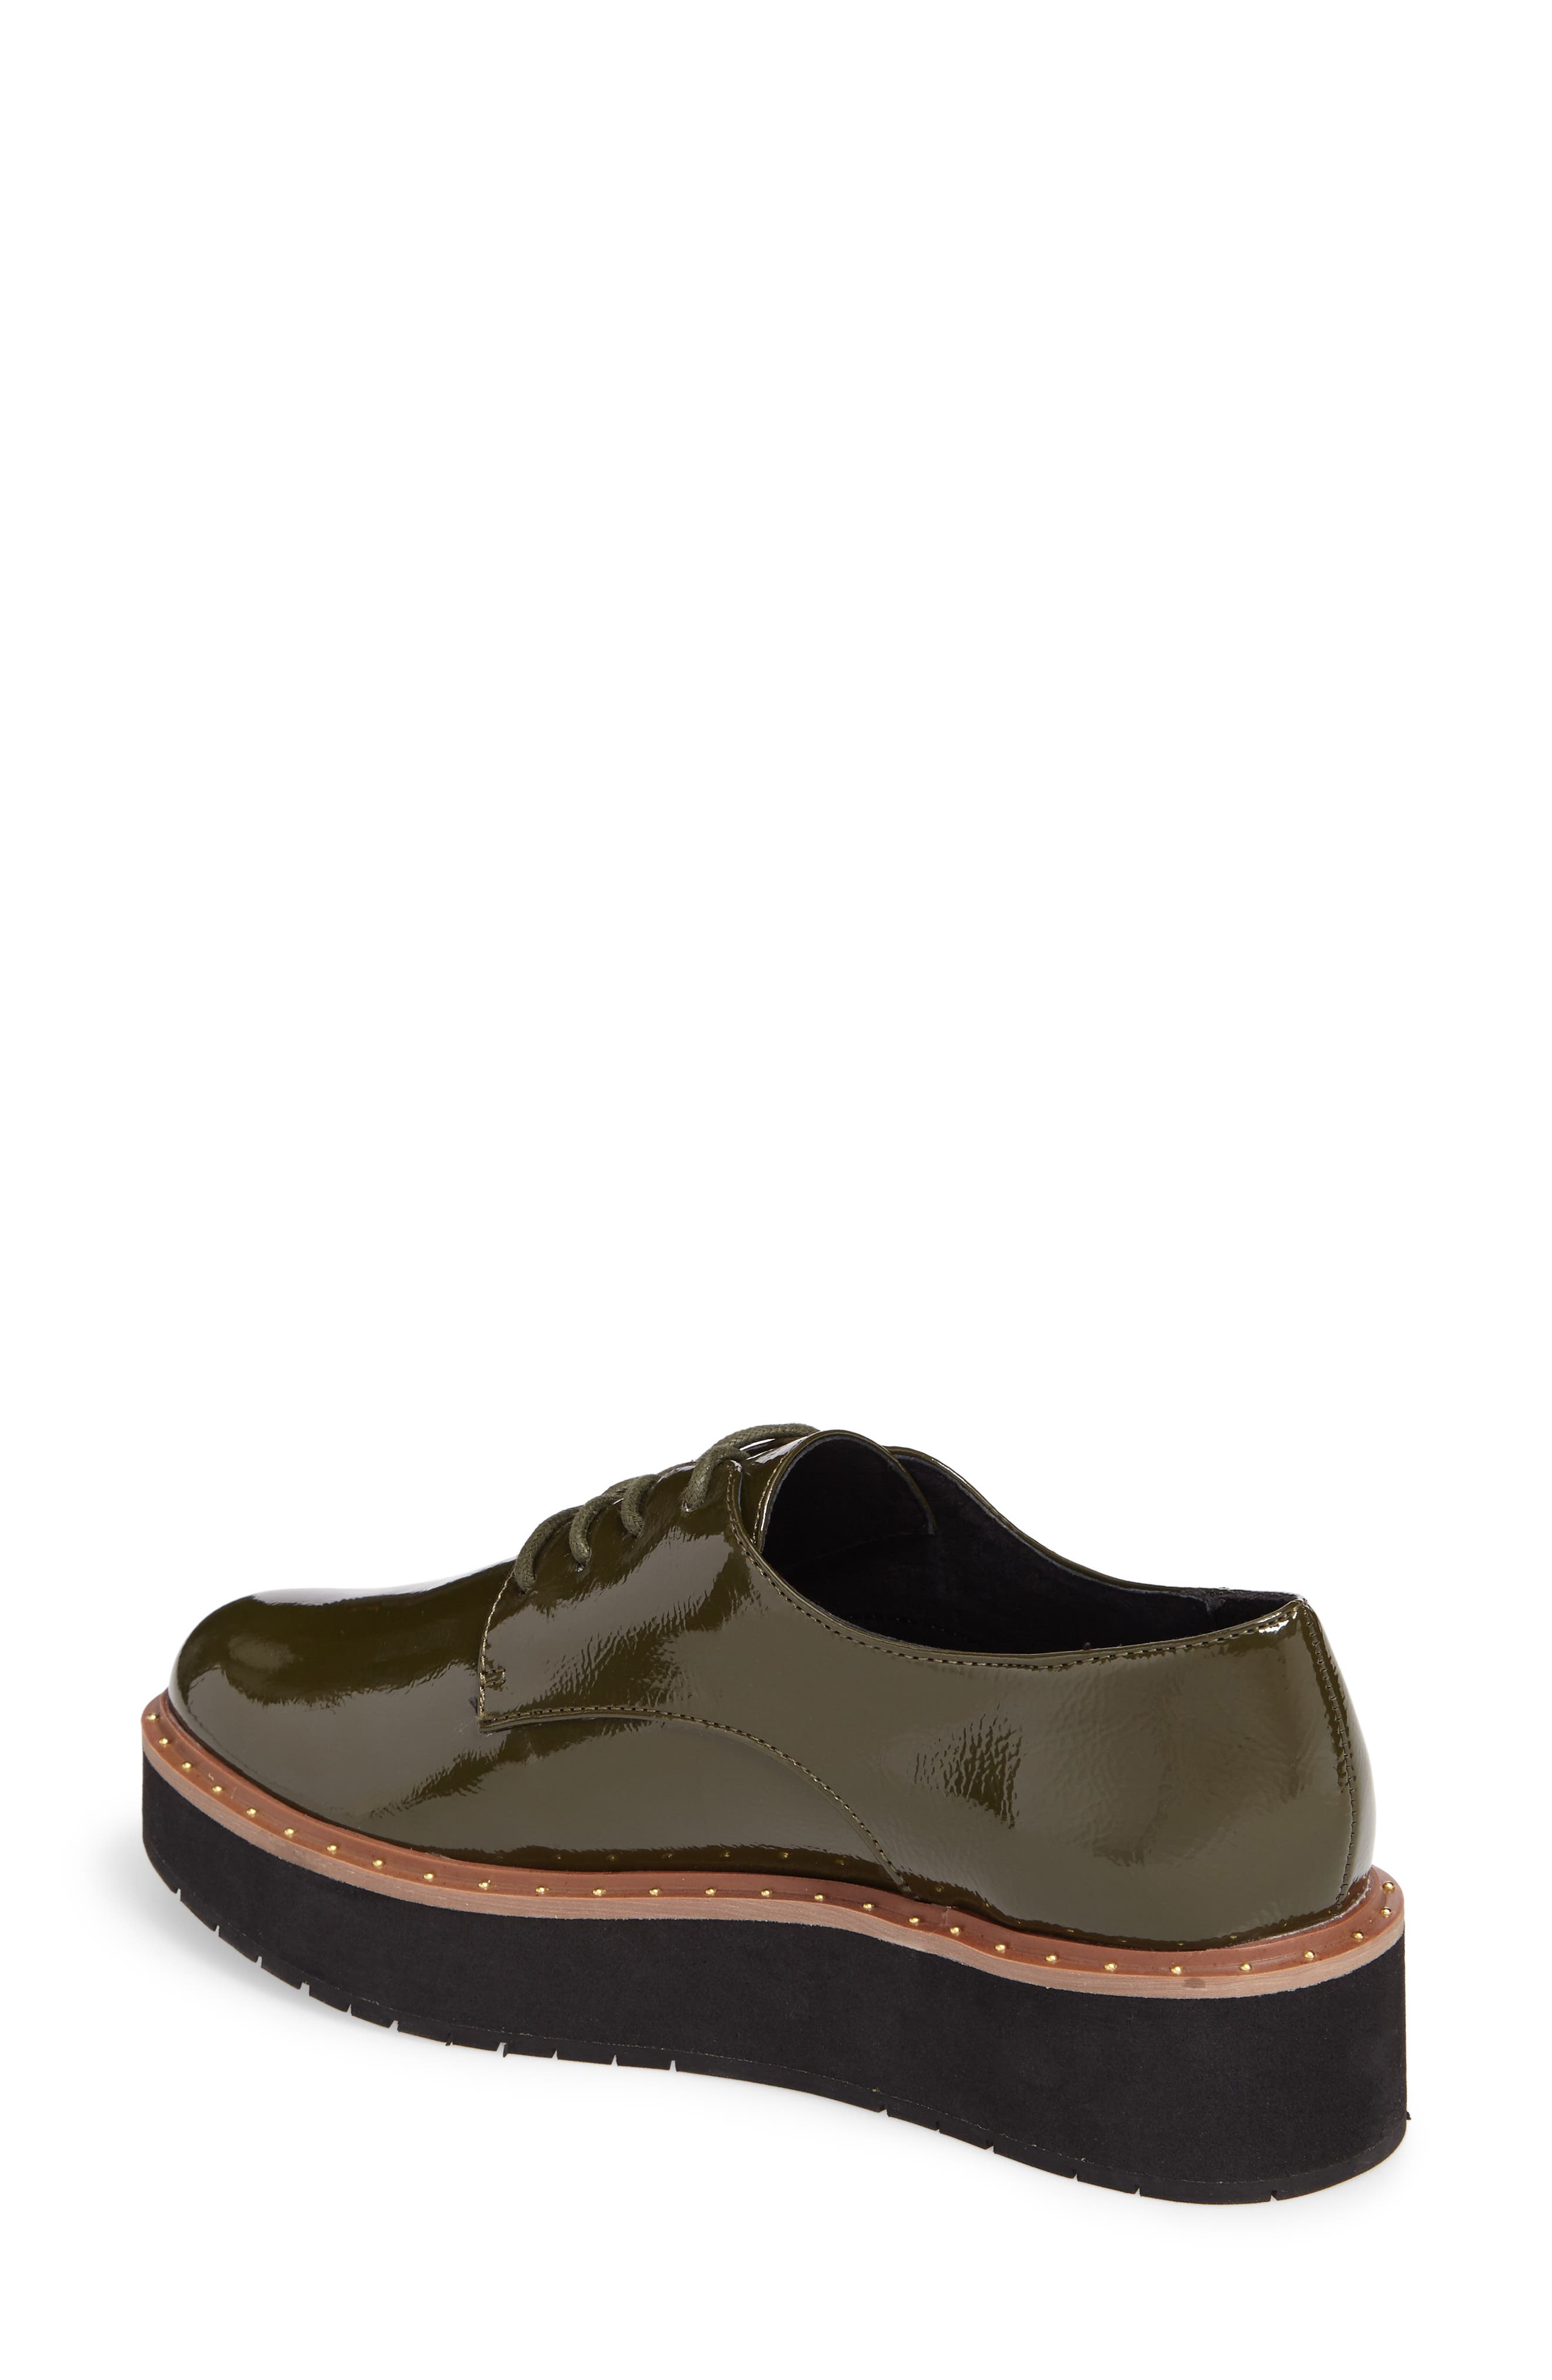 CHINESE LAUNDRY, Cecilia Platform Oxford, Alternate thumbnail 2, color, OLIVE